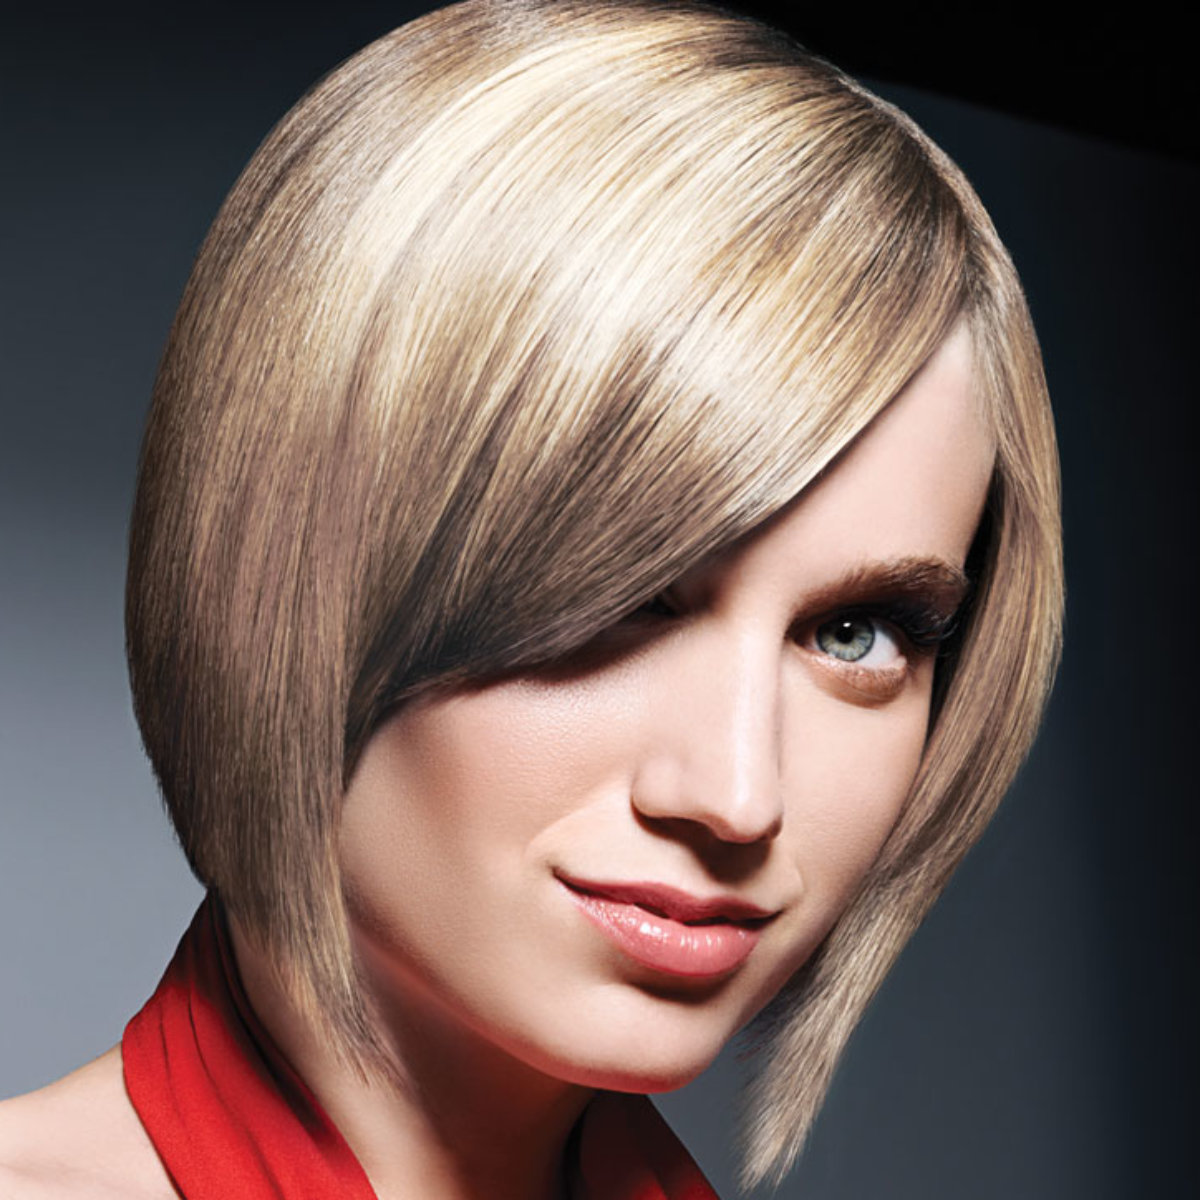 Sultry blonde hair color technique model after